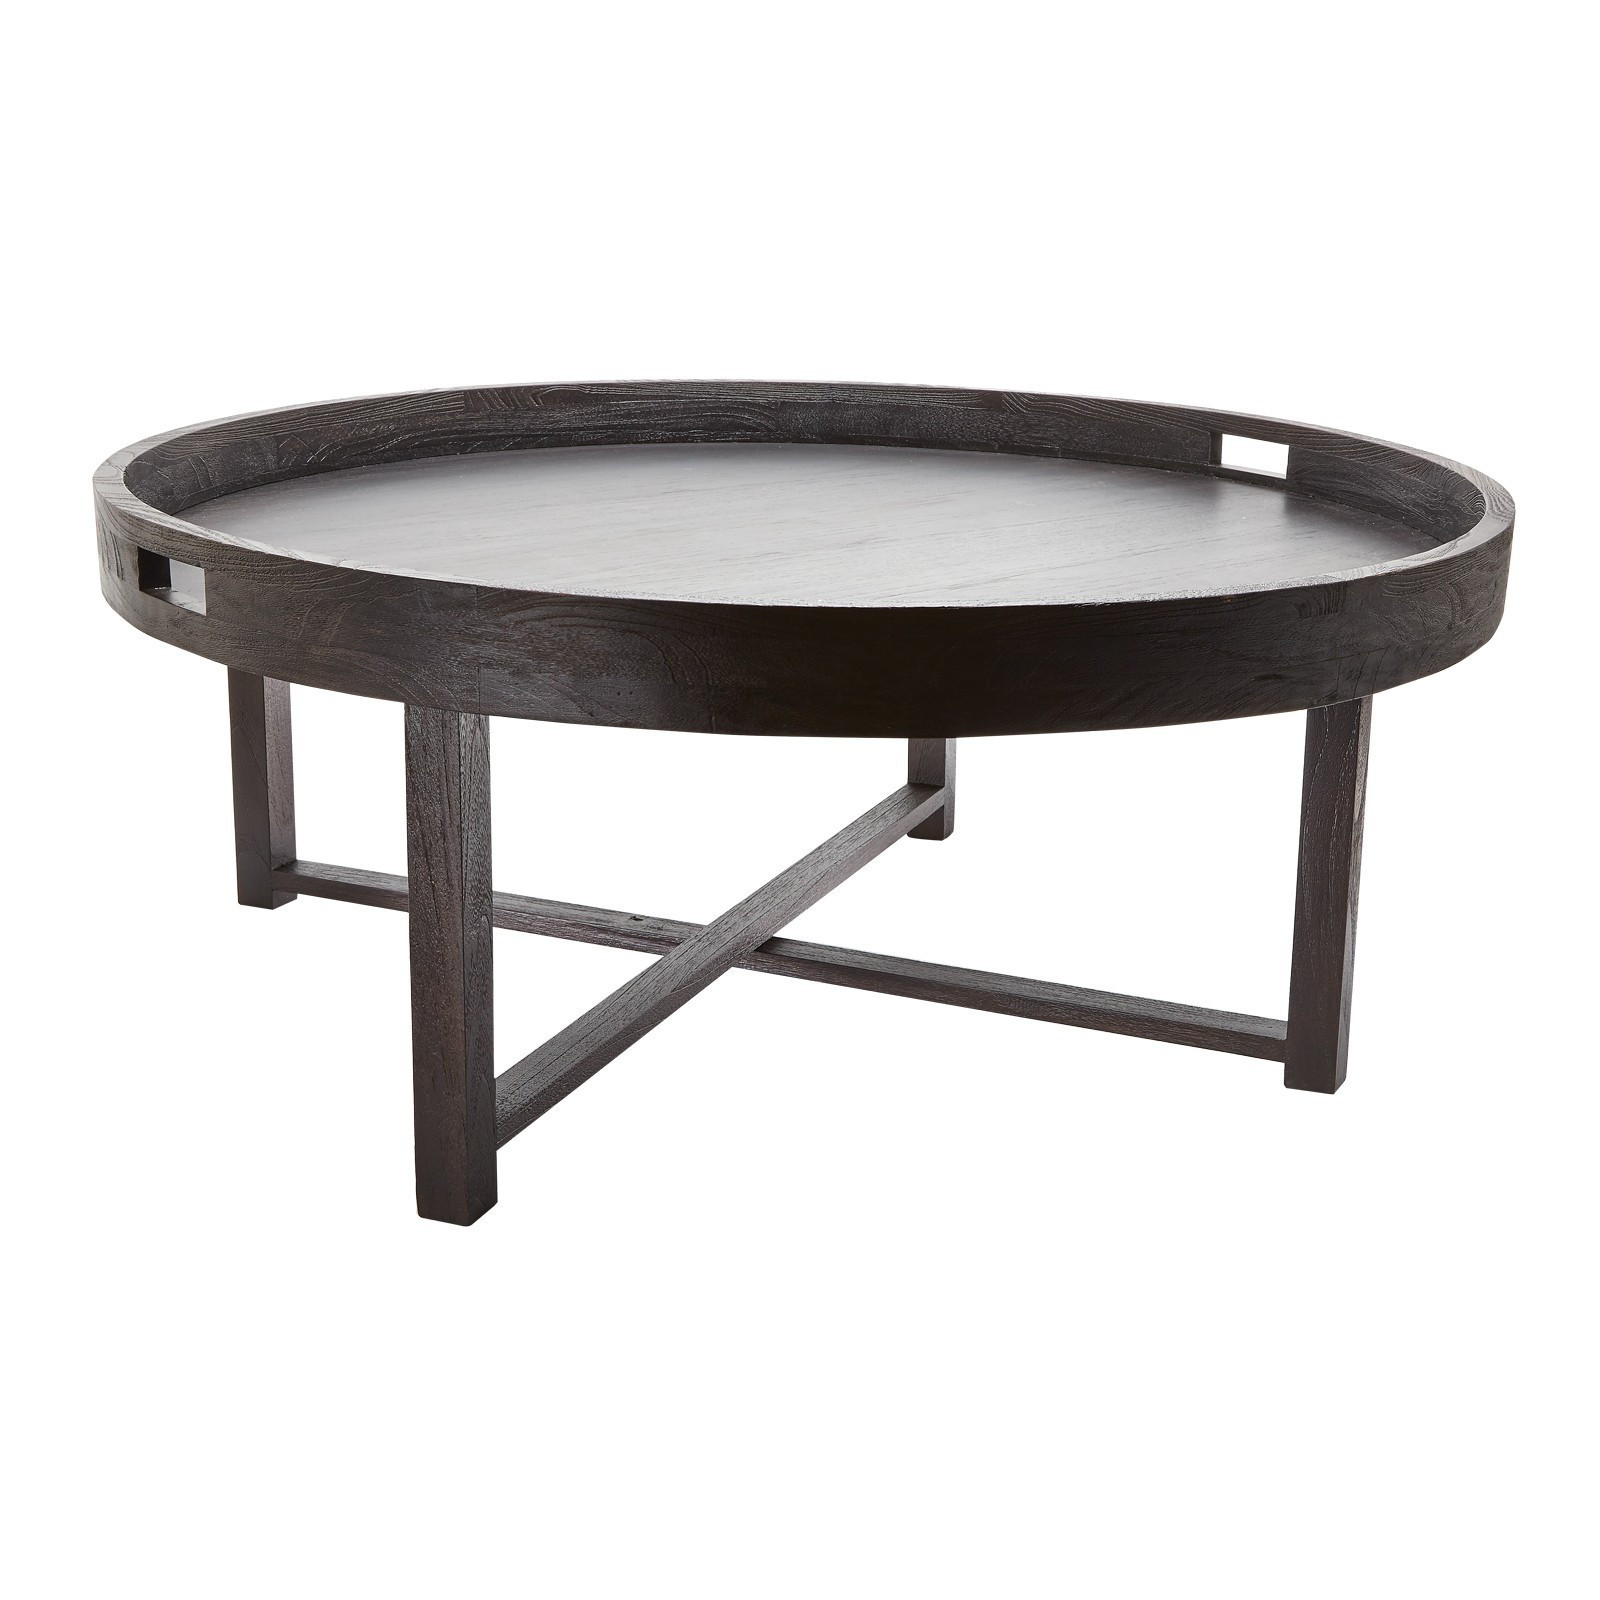 patio coffee table round beautiful outdoor side tables gray black and white modern door designs for rooms porch large garden jcpenny bedding knoll metal rose gold bedside pub